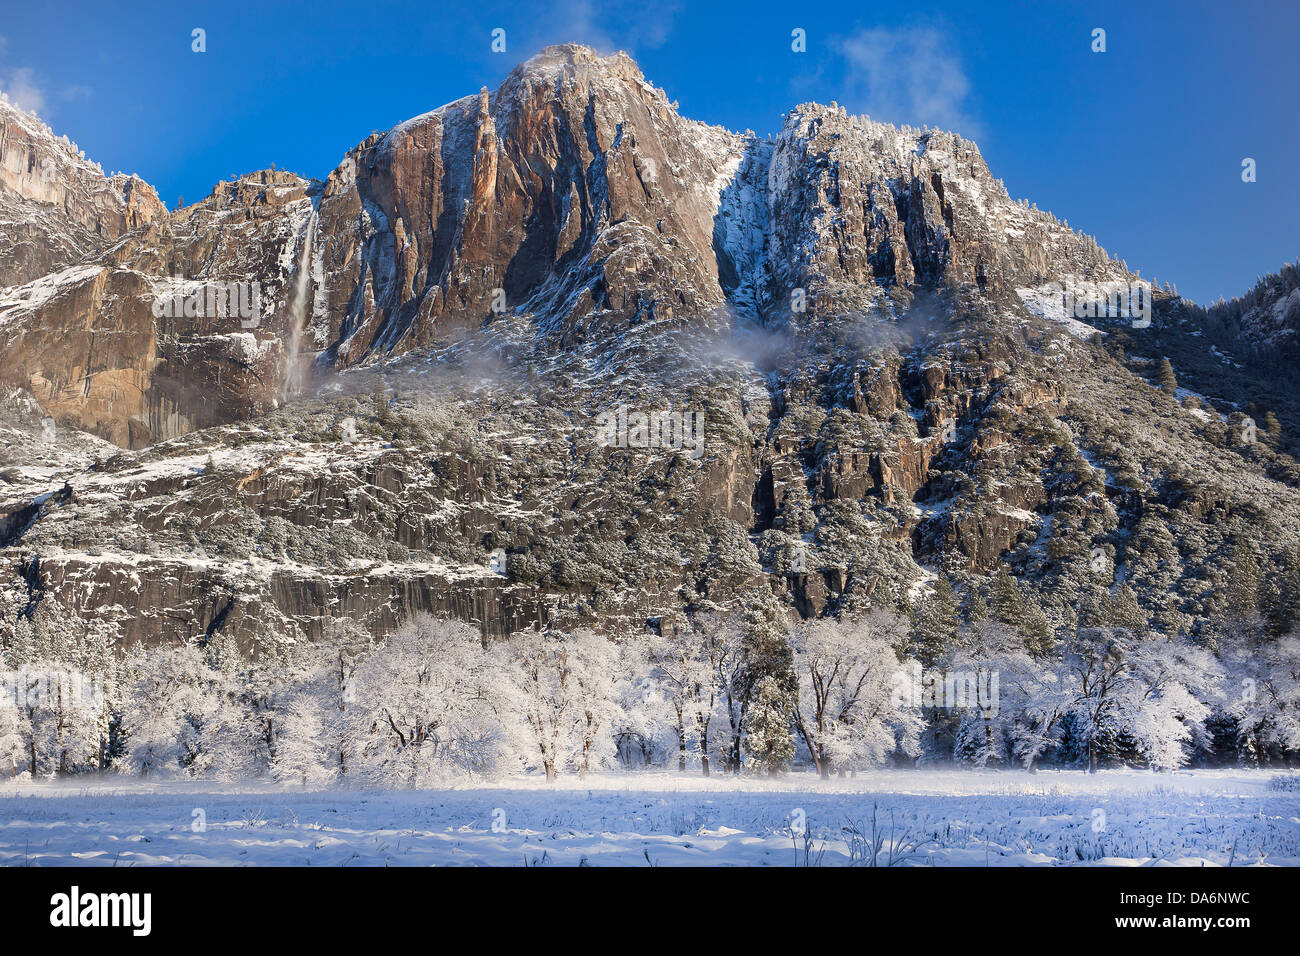 USA United States America California Eastern Sierras Peaks - United states mountains